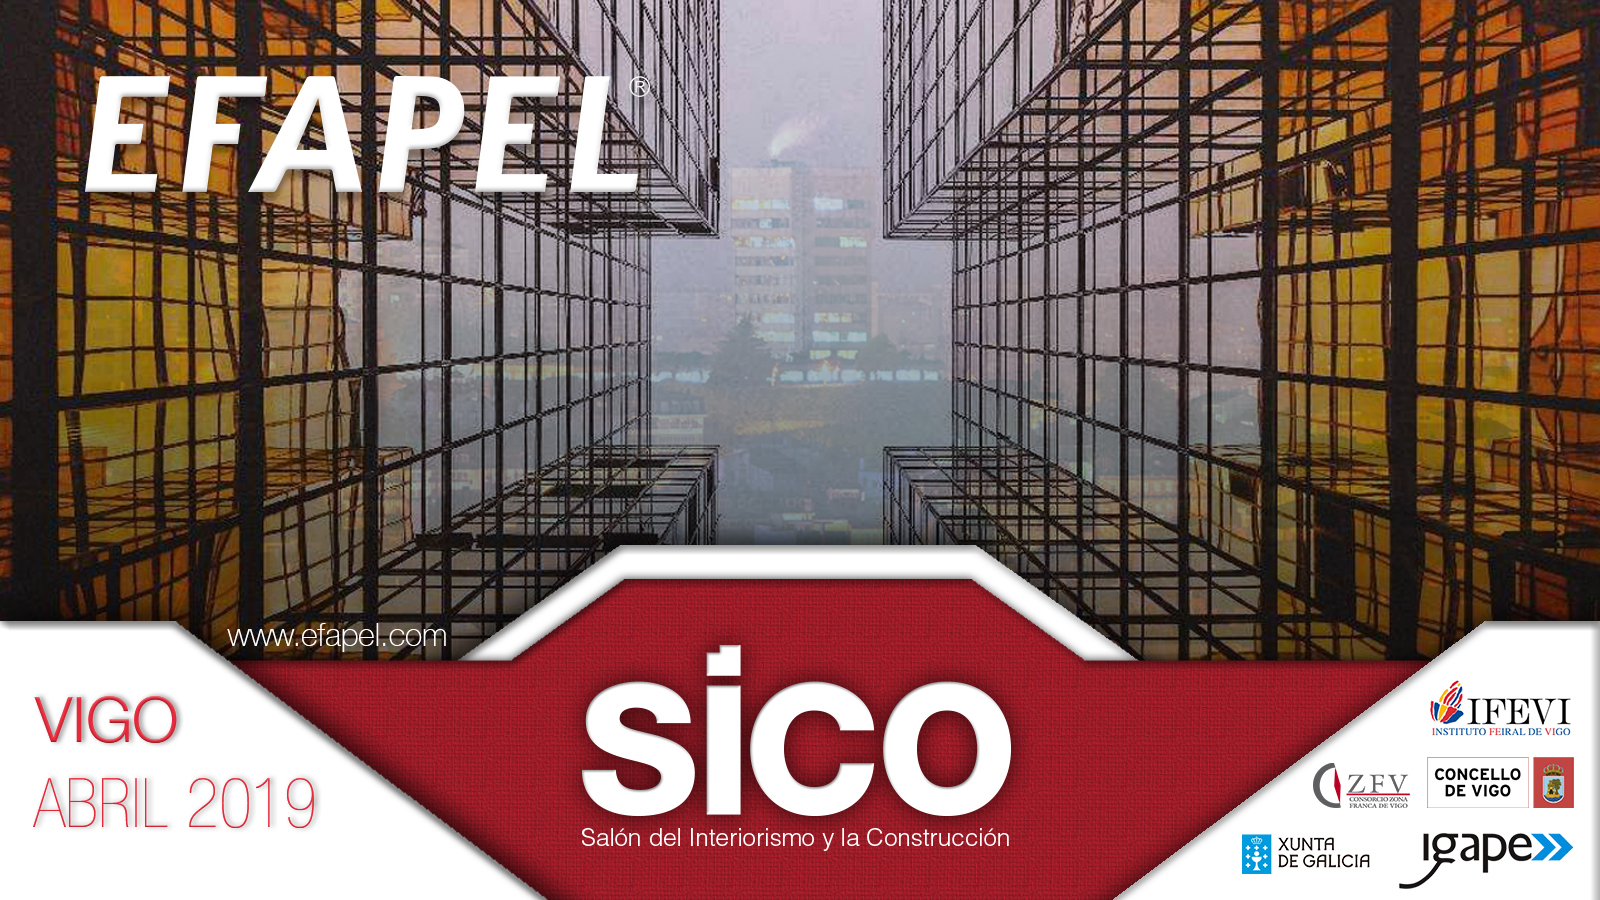 SICO <br>- Held in April/2019